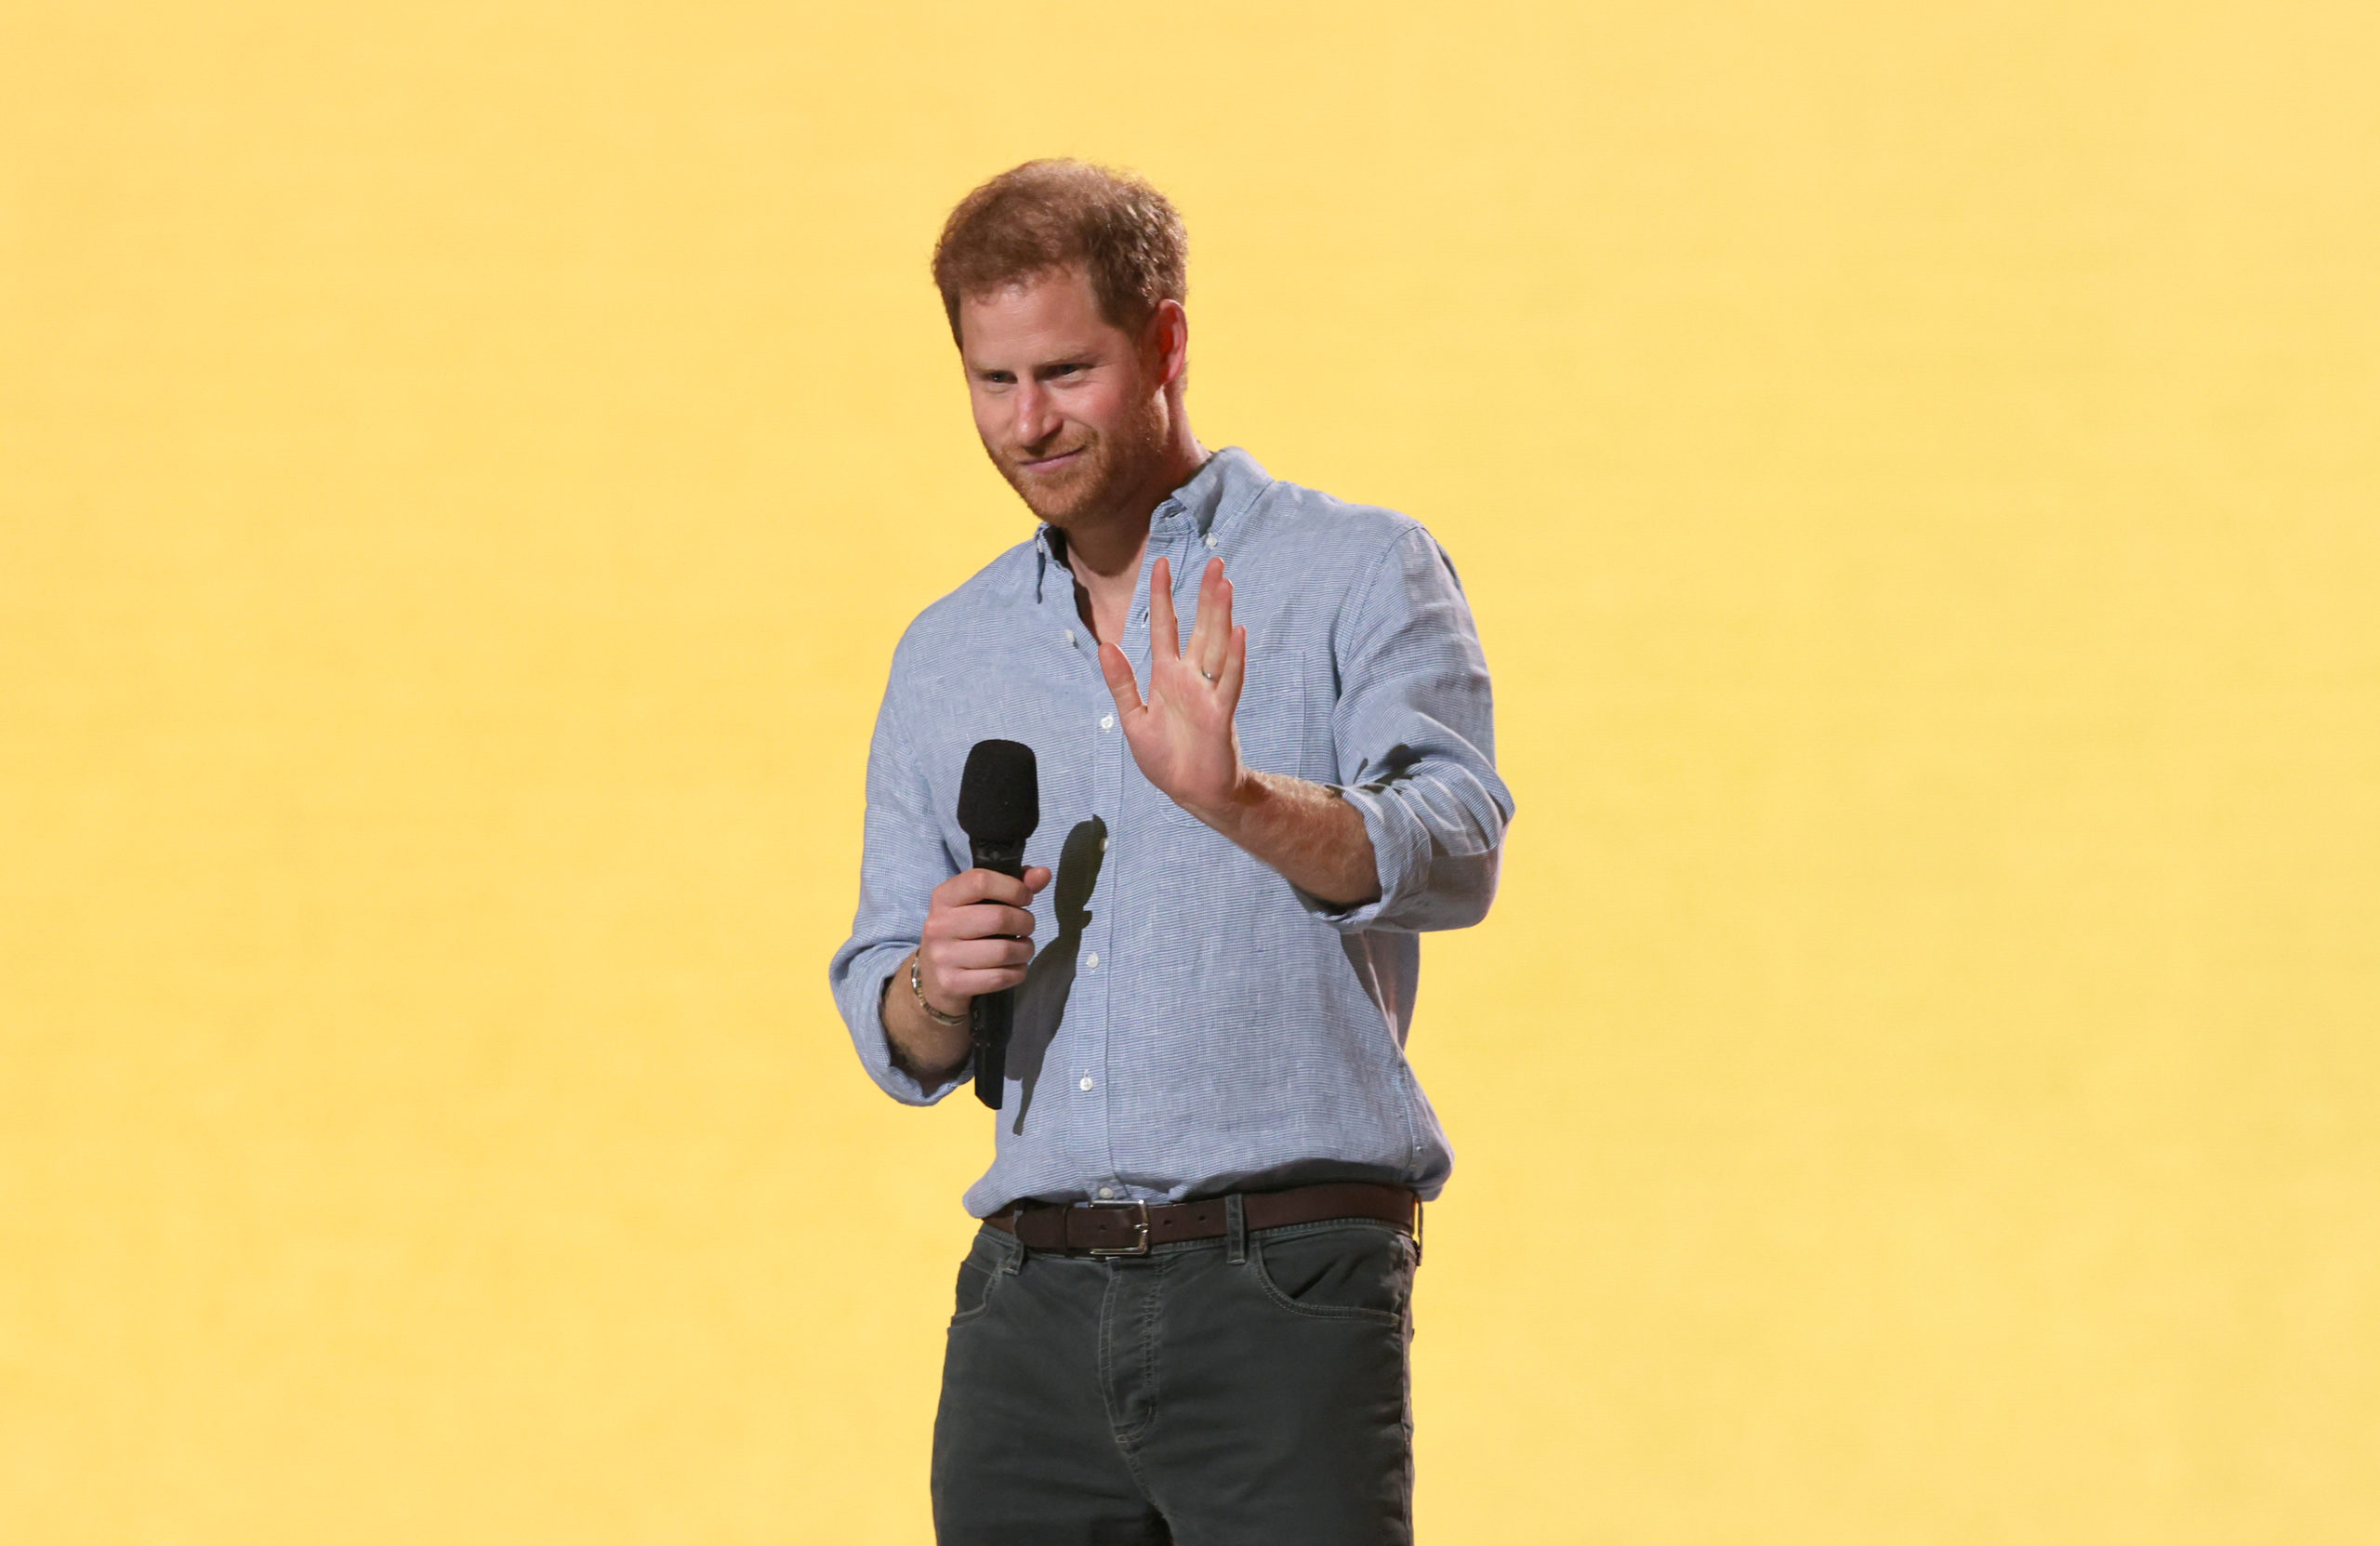 Prince Harry speaks onstage during a Global Citizen event at SoFi Stadium in Inglewood, California on May 2. (Kevin Winter/Getty Images for Global Citizen VAX LIVE)